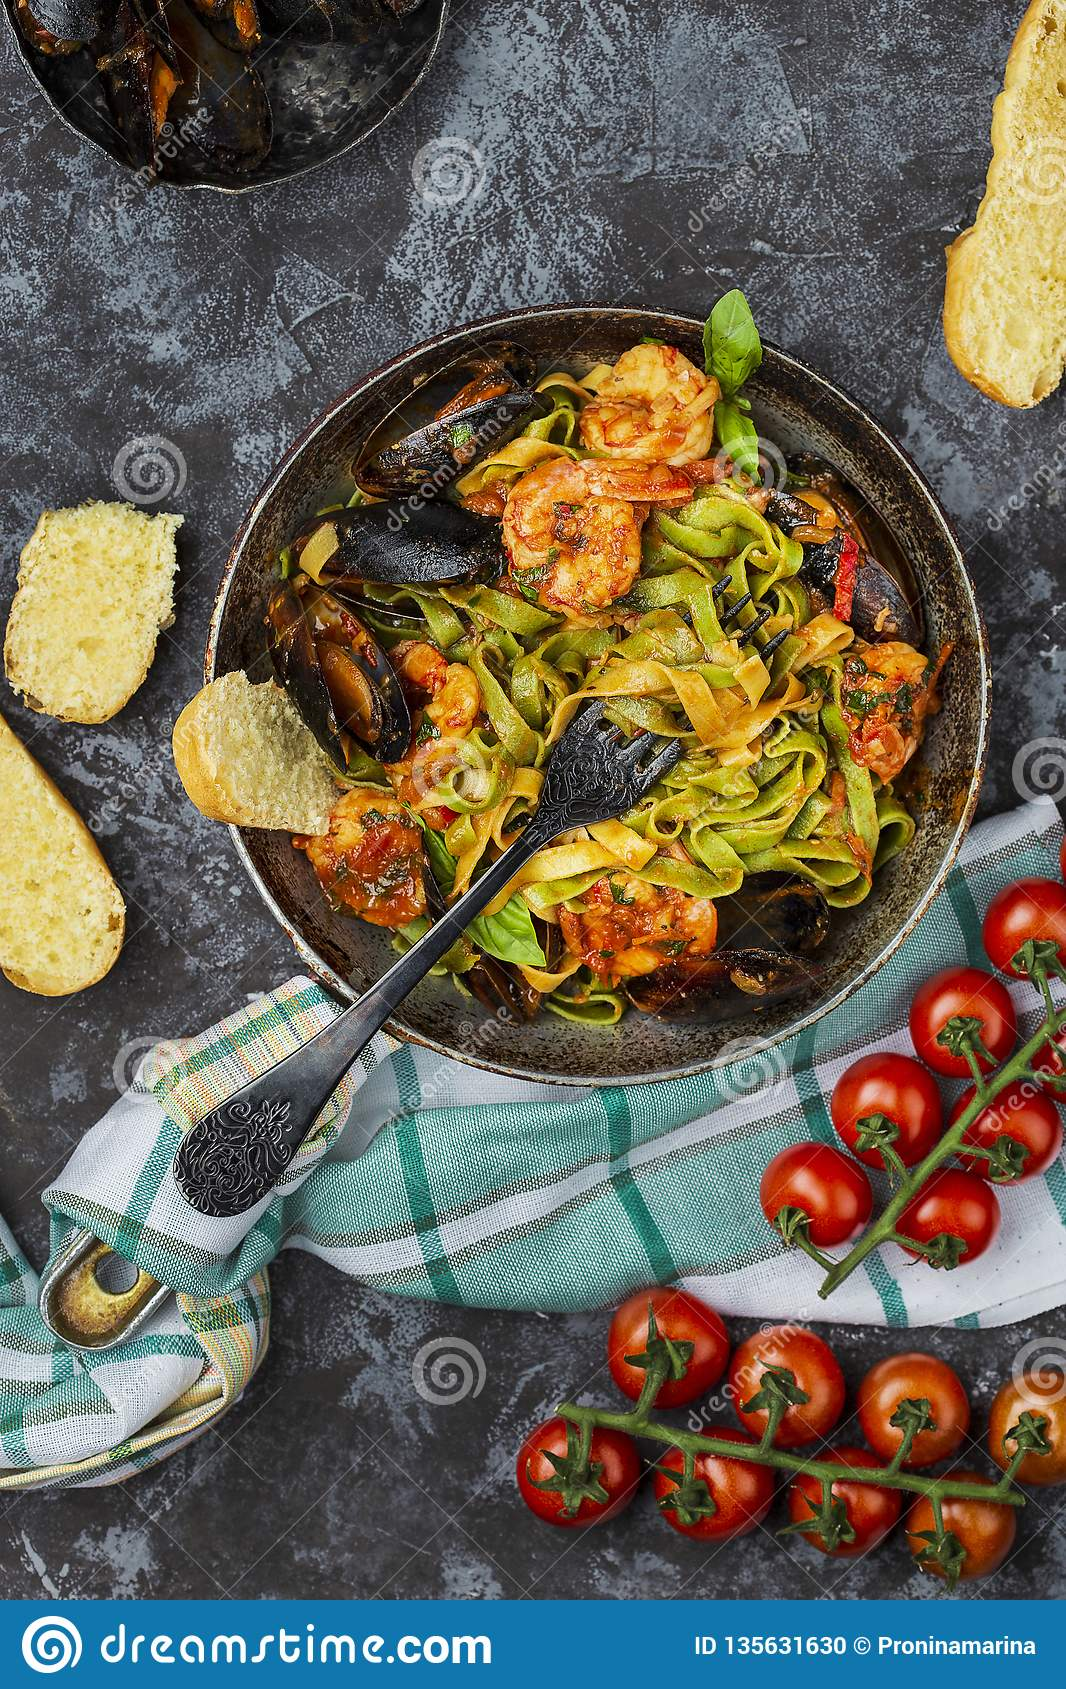 Homemade Italian Seafood Pasta with Mussels and Shrimp